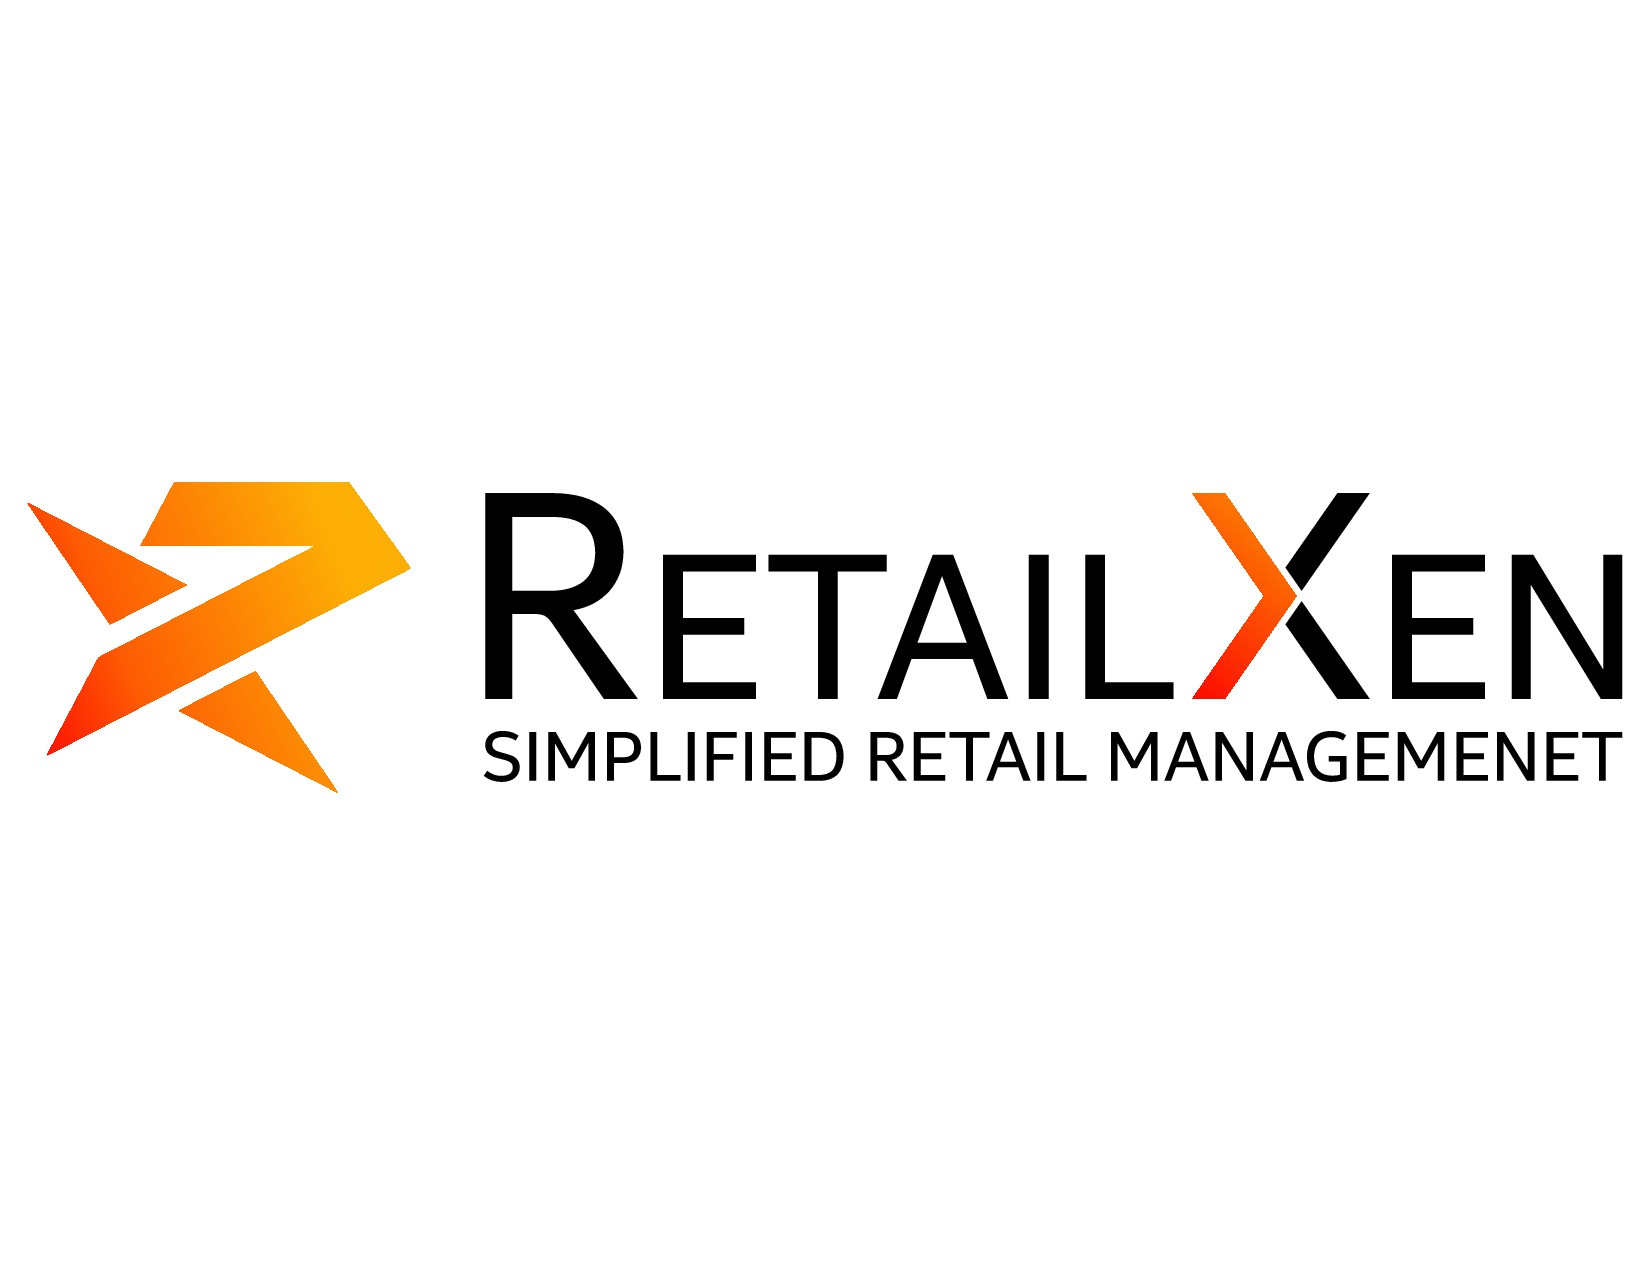 Abstract   Minimalist   Professional - Logo for an E-commerce SaaS focusing on small/medium retail